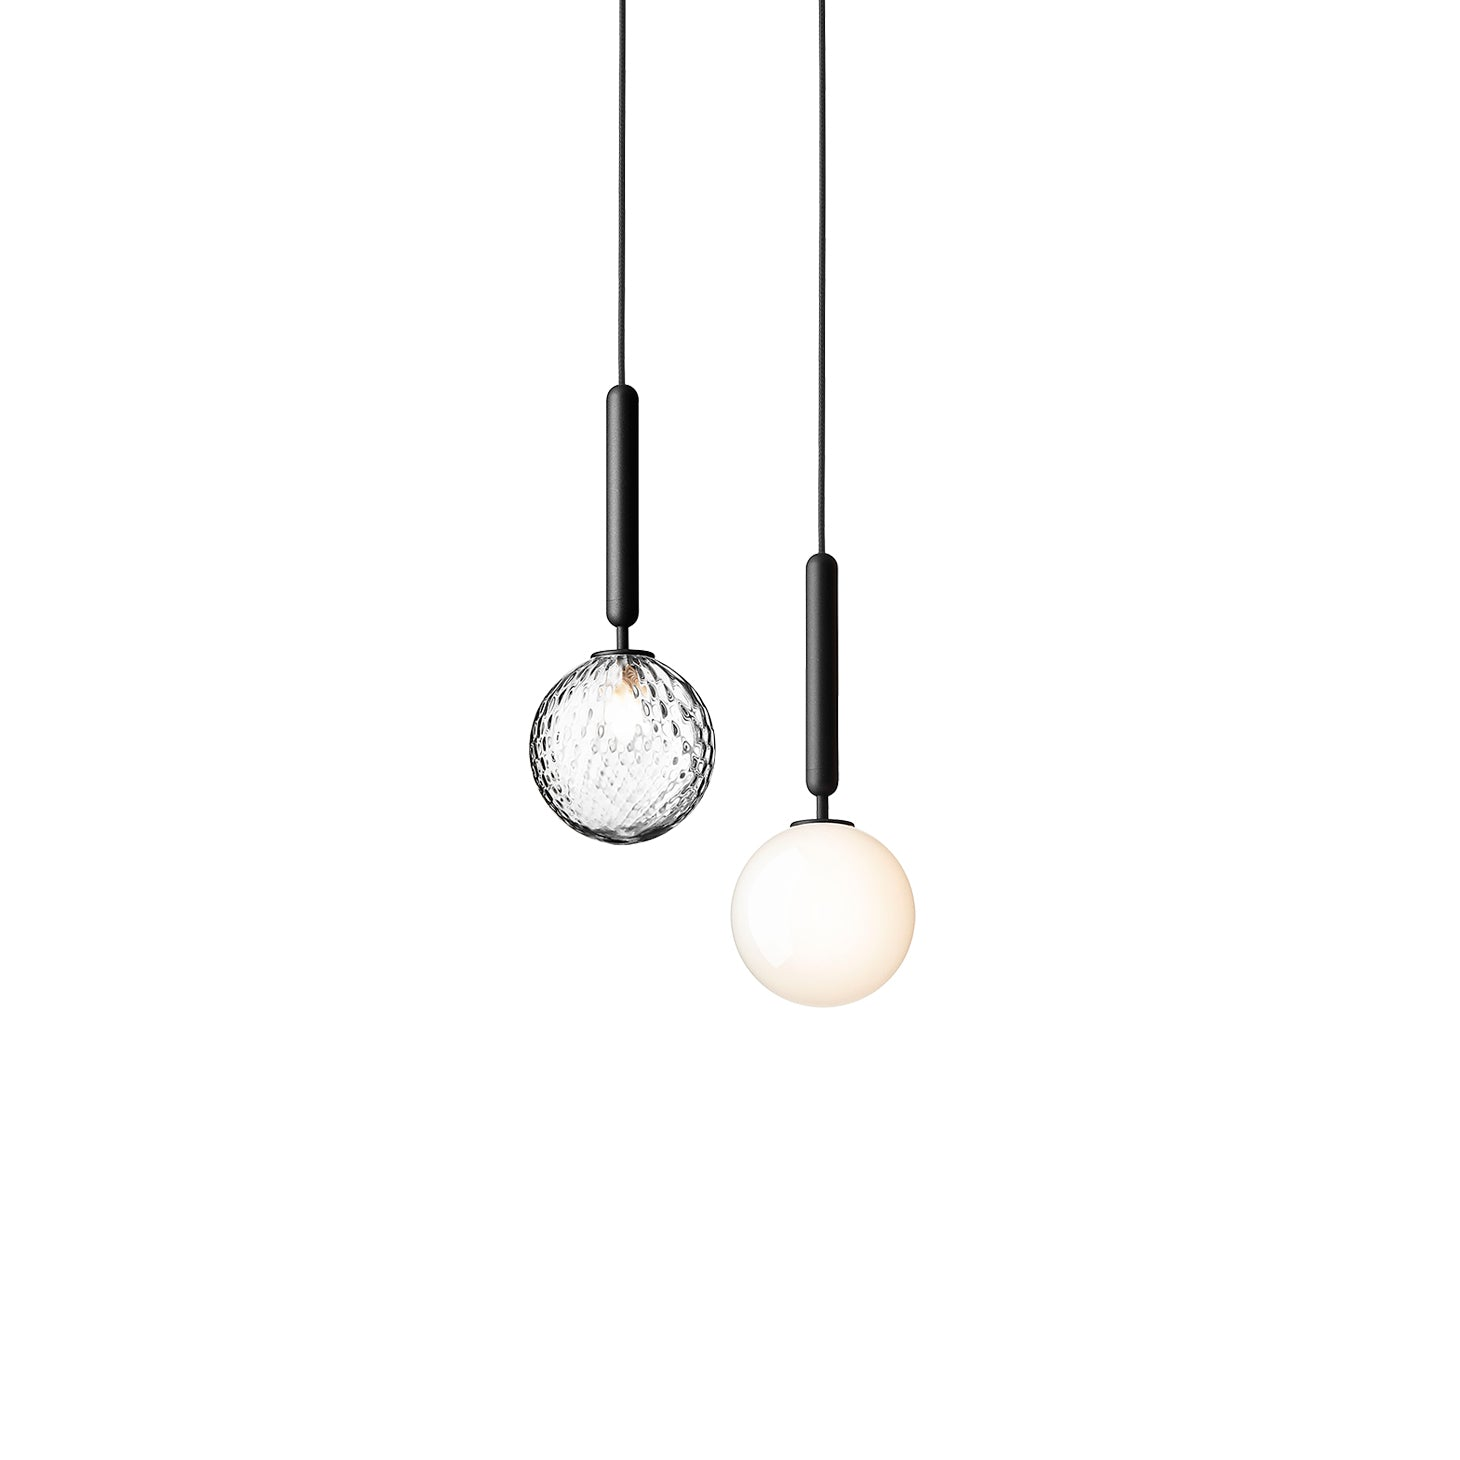 Miira 1 Pendant: Optic Clear + Opal White + Rock Grey + Small